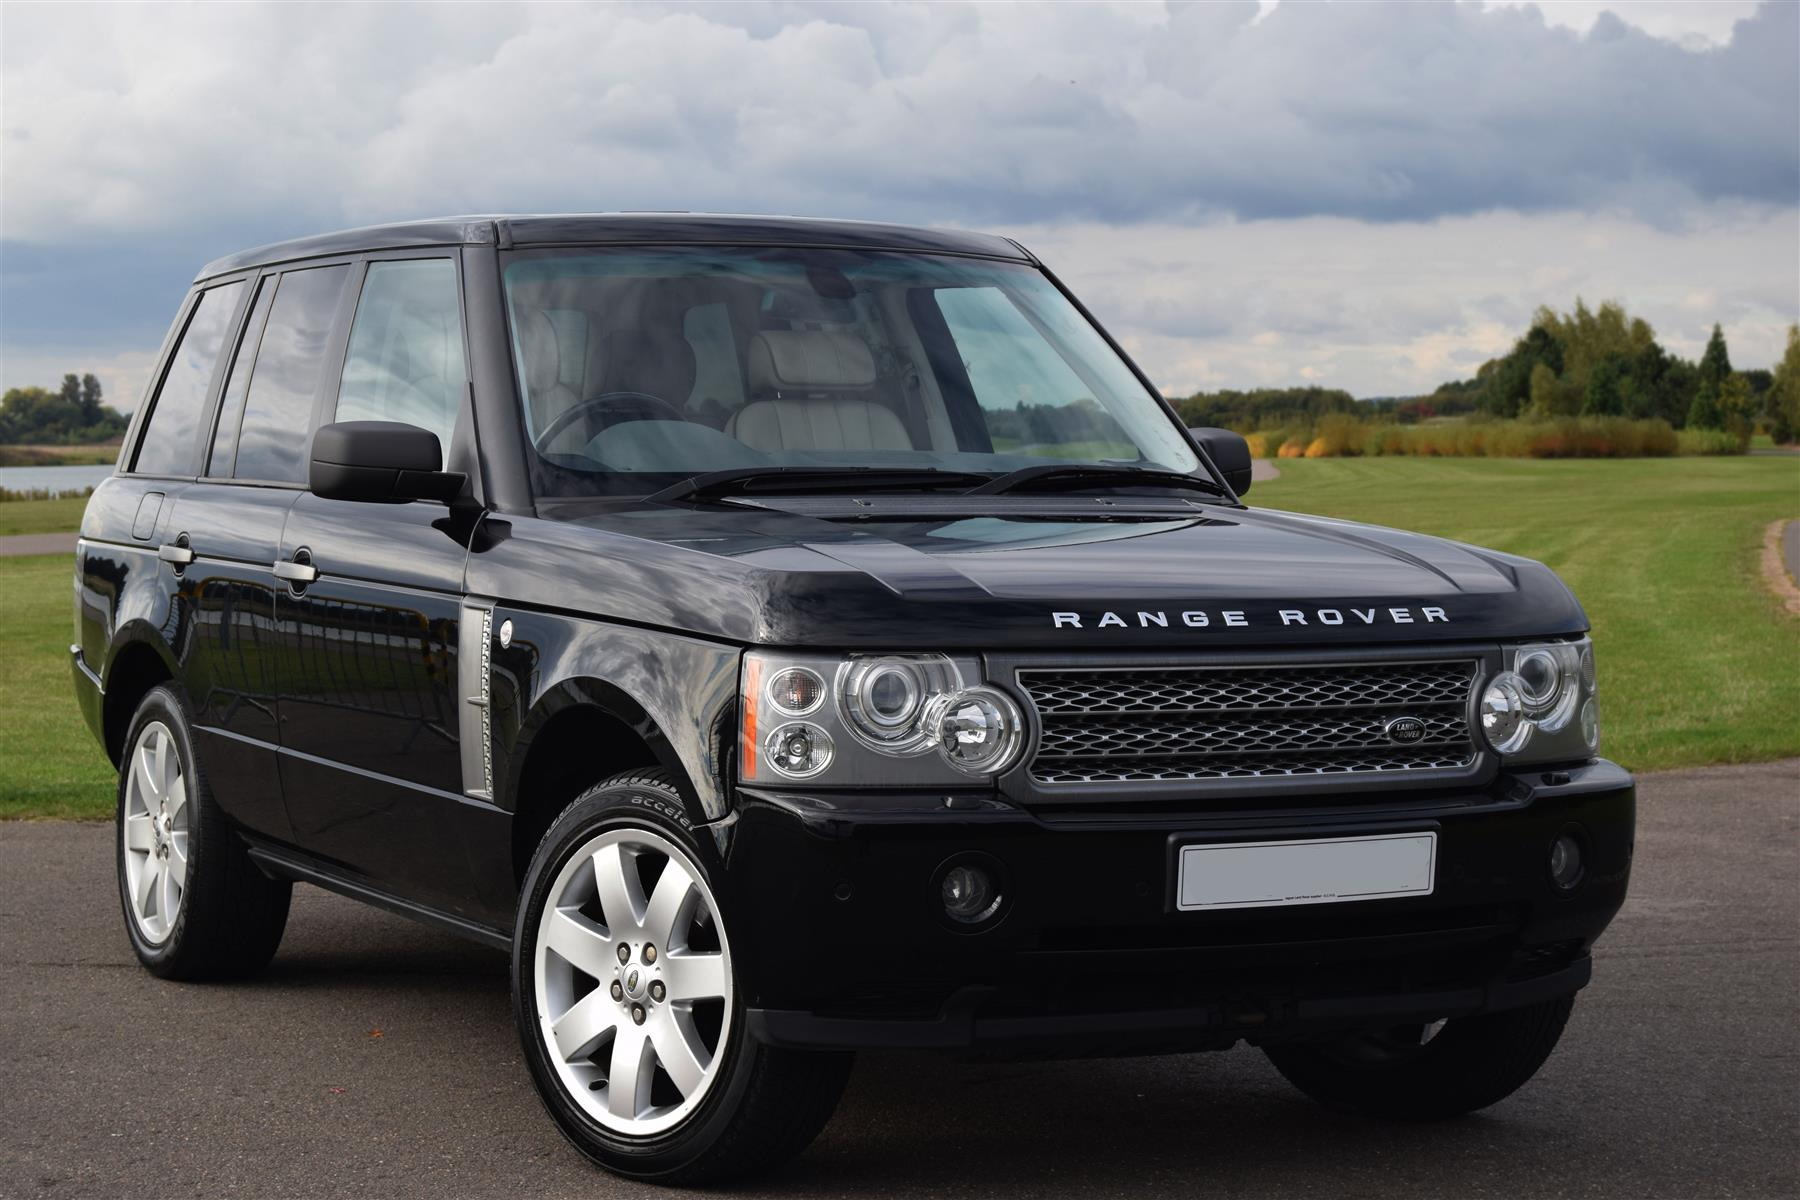 range rover v8 petrol facelift. Black Bedroom Furniture Sets. Home Design Ideas